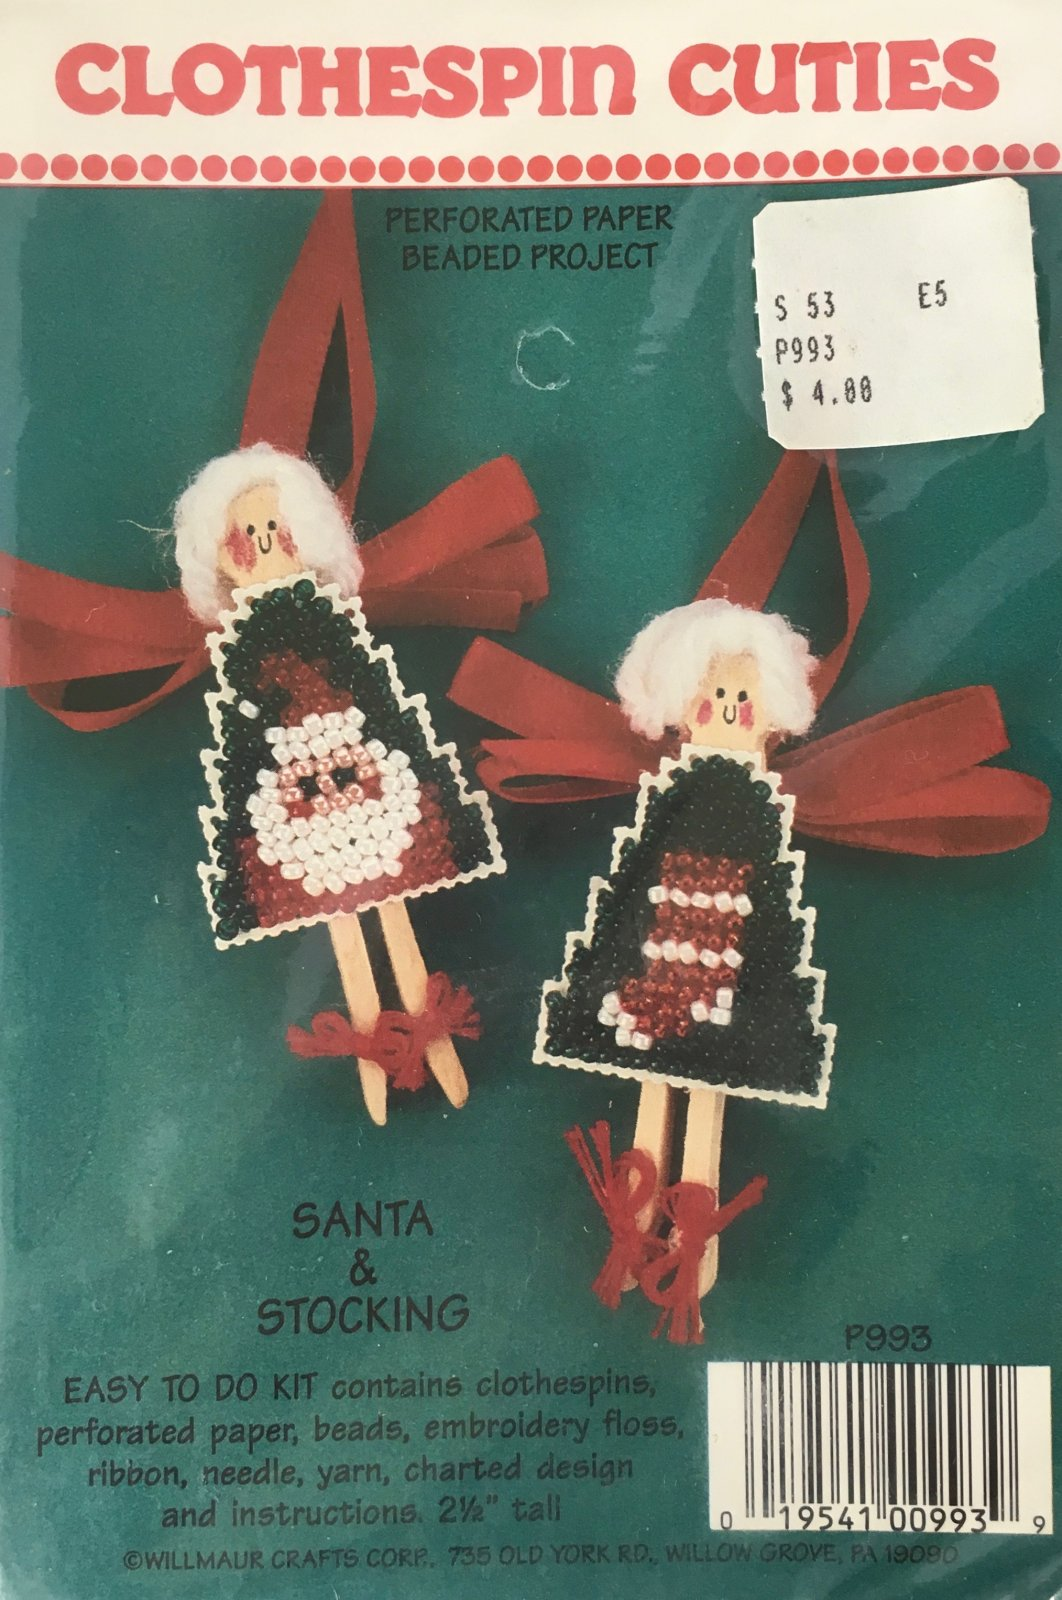 Astor Place: Clothespin Cuties Santa & Stocking Kit P993